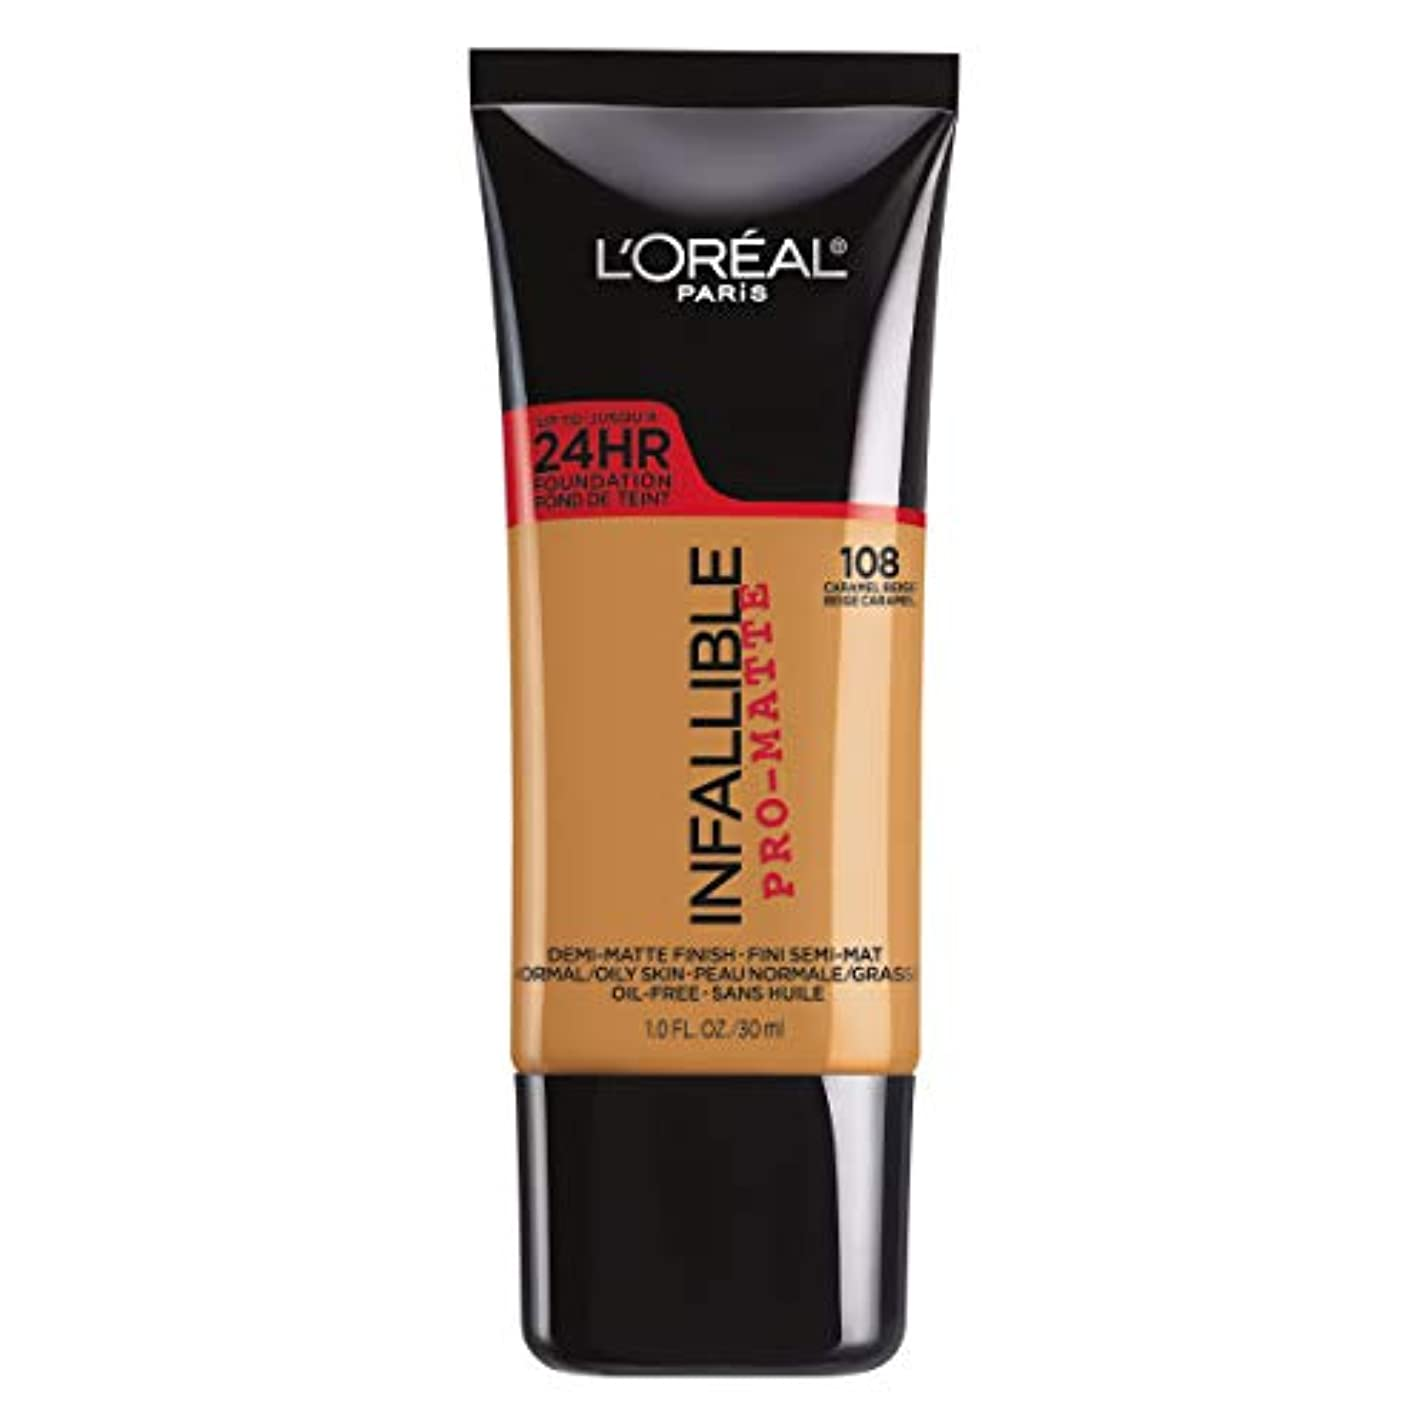 アサーピーク兄弟愛L'Oreal Paris Infallible Pro-Matte Foundation Makeup, 108 Caramel Beige, 1 fl. oz[並行輸入品]